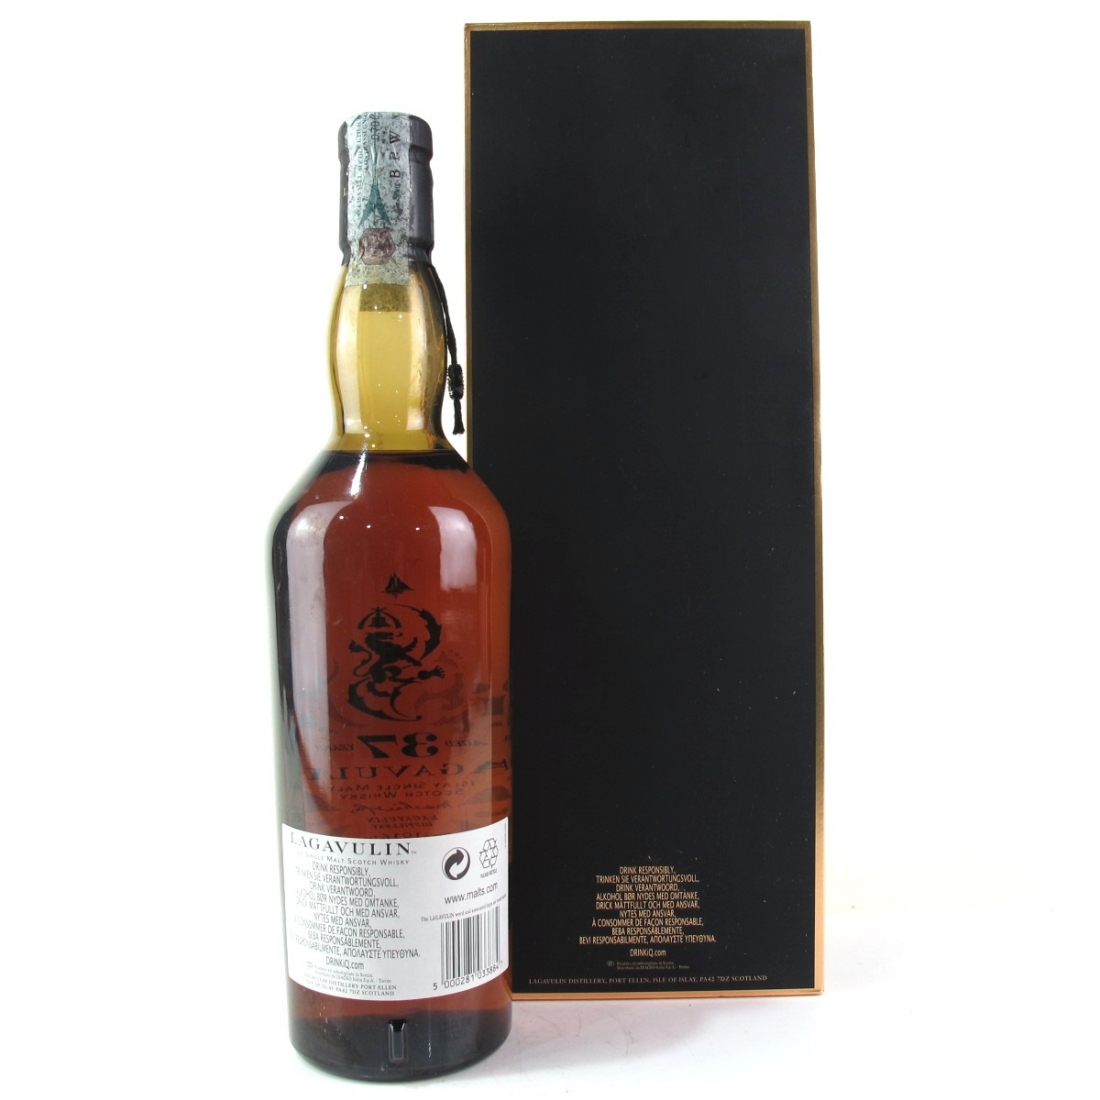 Lagavulin 1976 37 Year Old